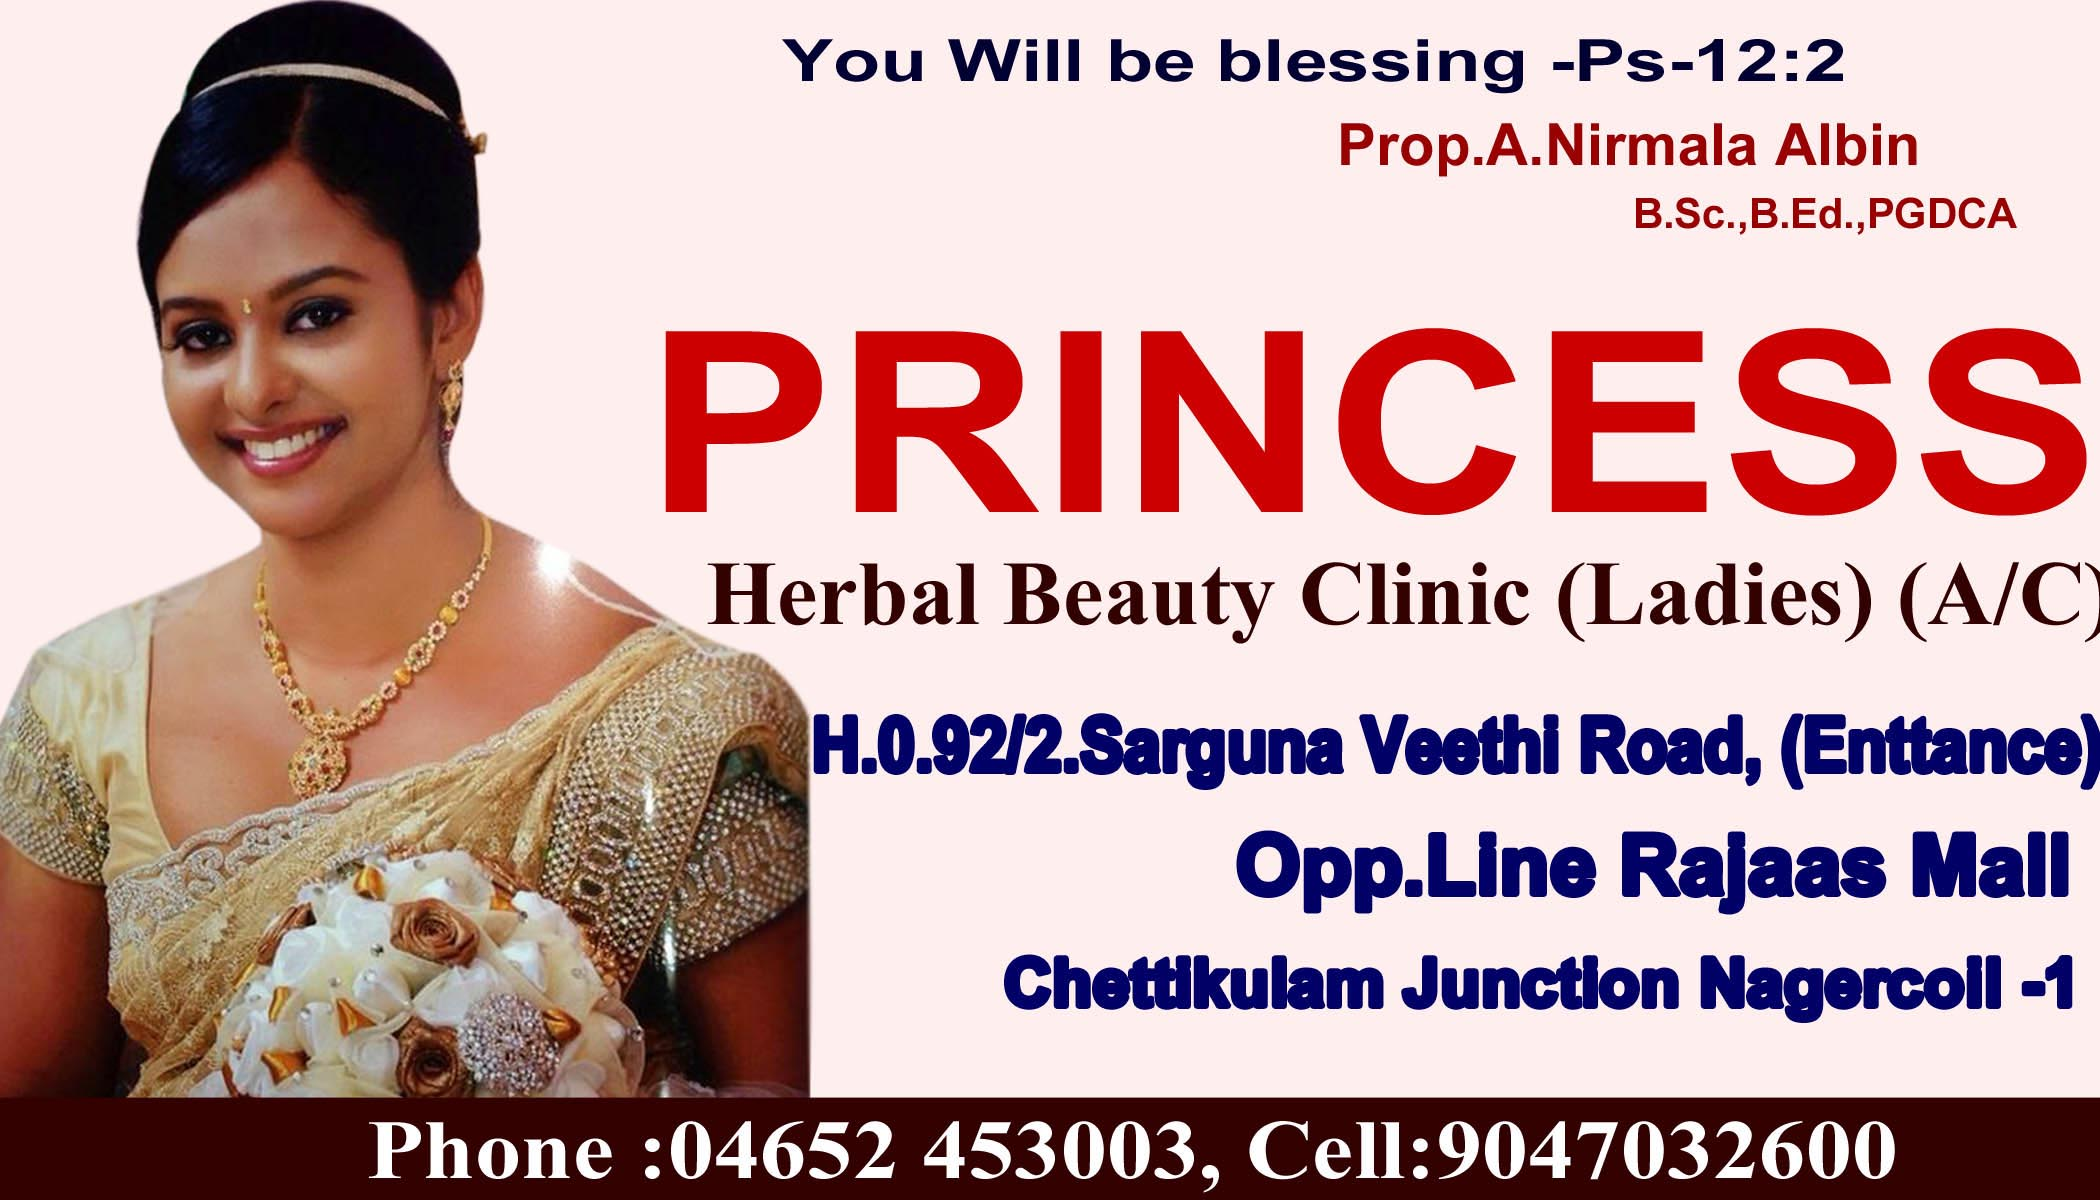 PRINCESS HERBAL BEAUTY CLINIC A/C